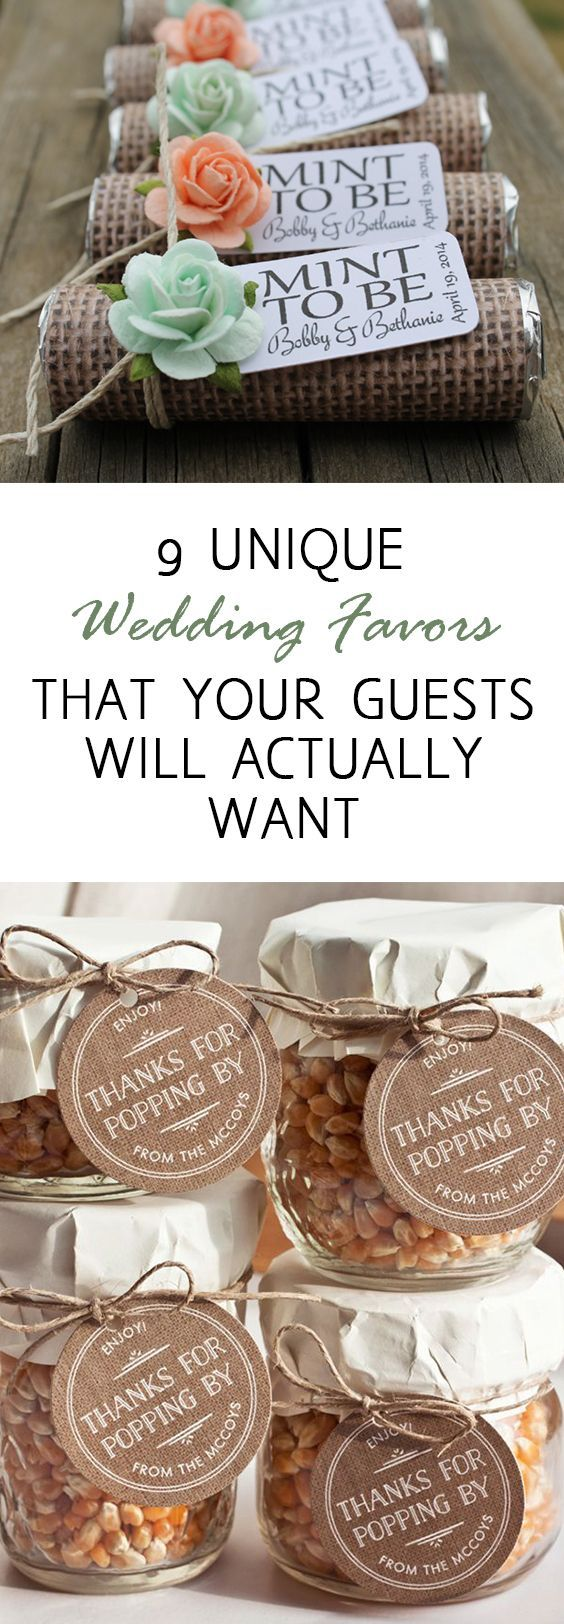 86 best Wedding Favors images on Pinterest | Dream wedding, Wedding ...